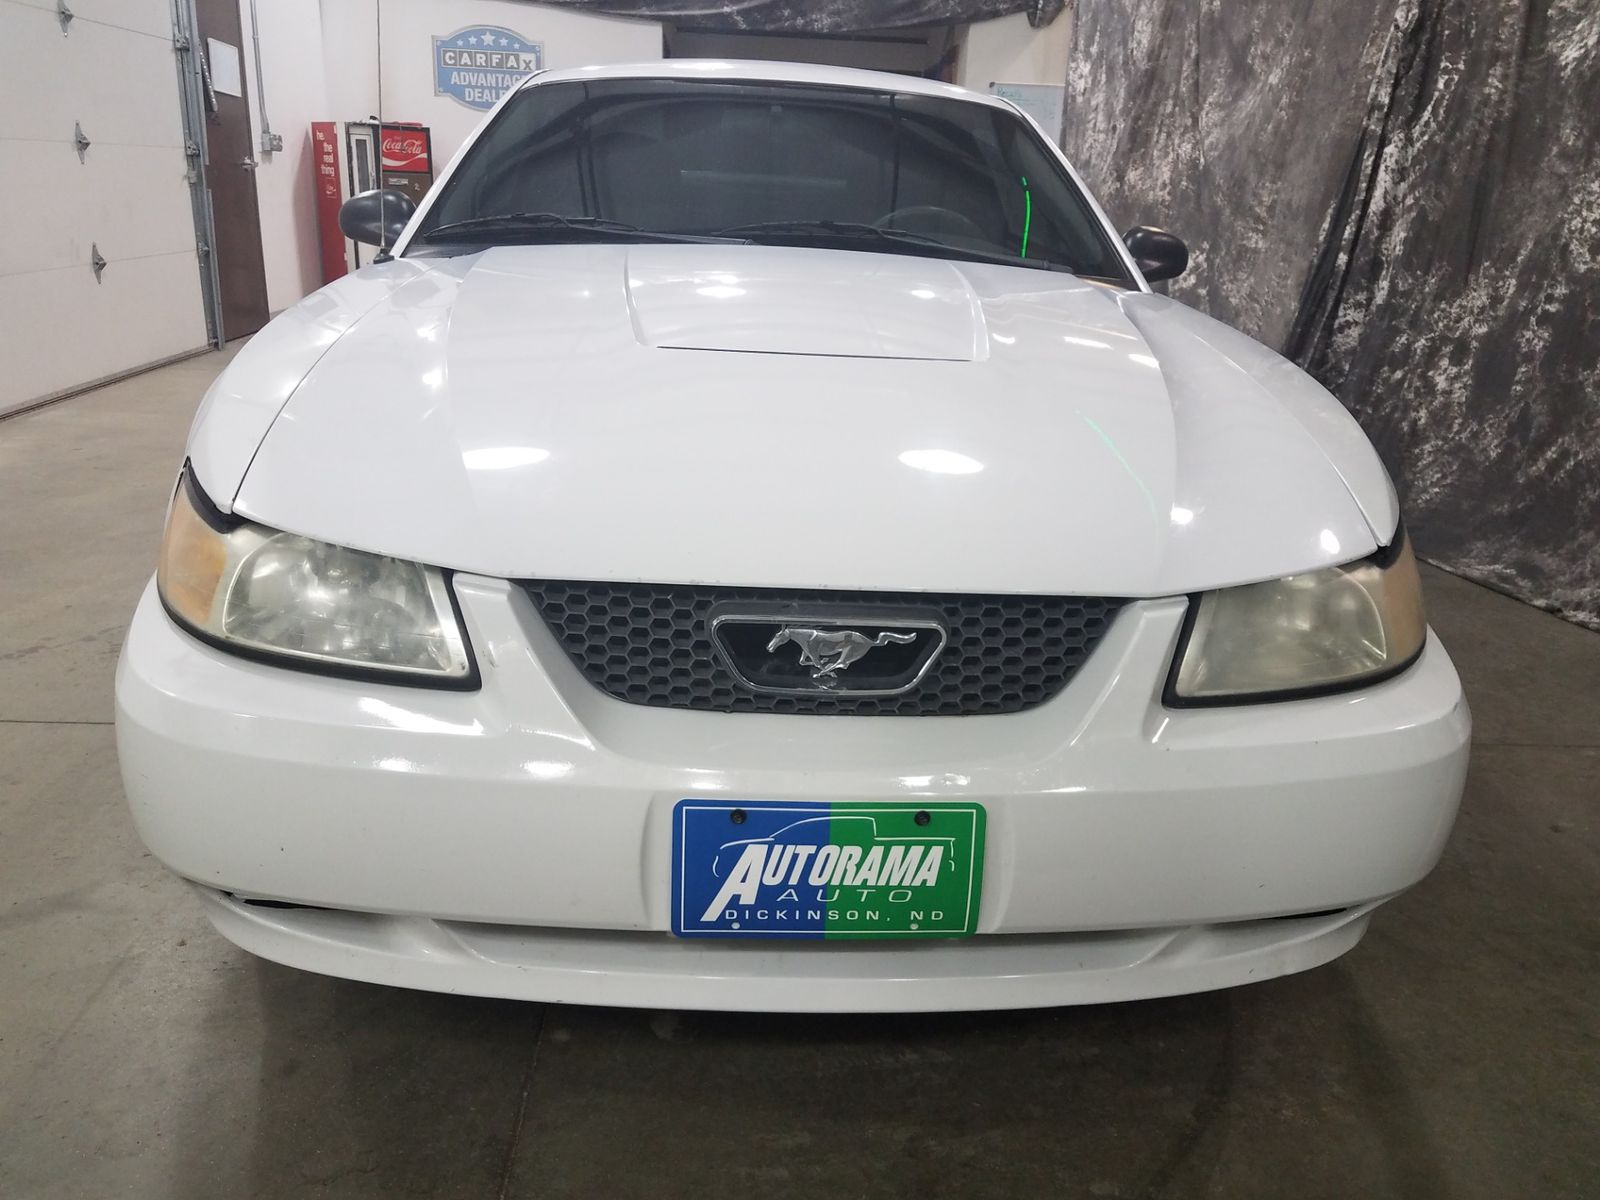 2004 Ford Mustang Standard city ND AutoRama Auto Sales